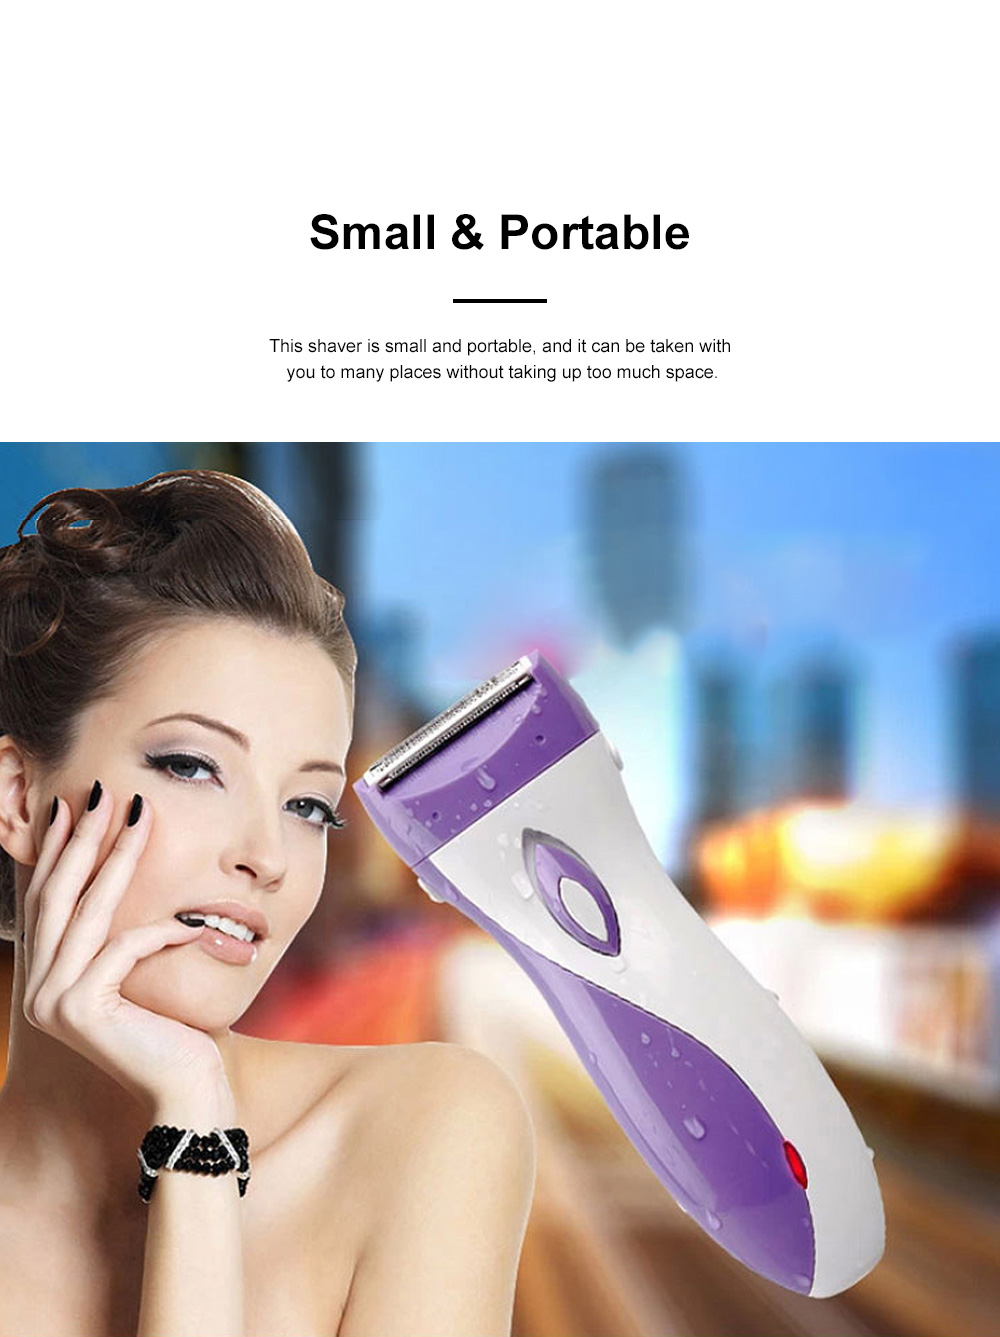 Portable Handy Rechargeable Female Painless Digital Shaver Armpit Hair Shank-Feathering Pubes Grainer for Ladies 1